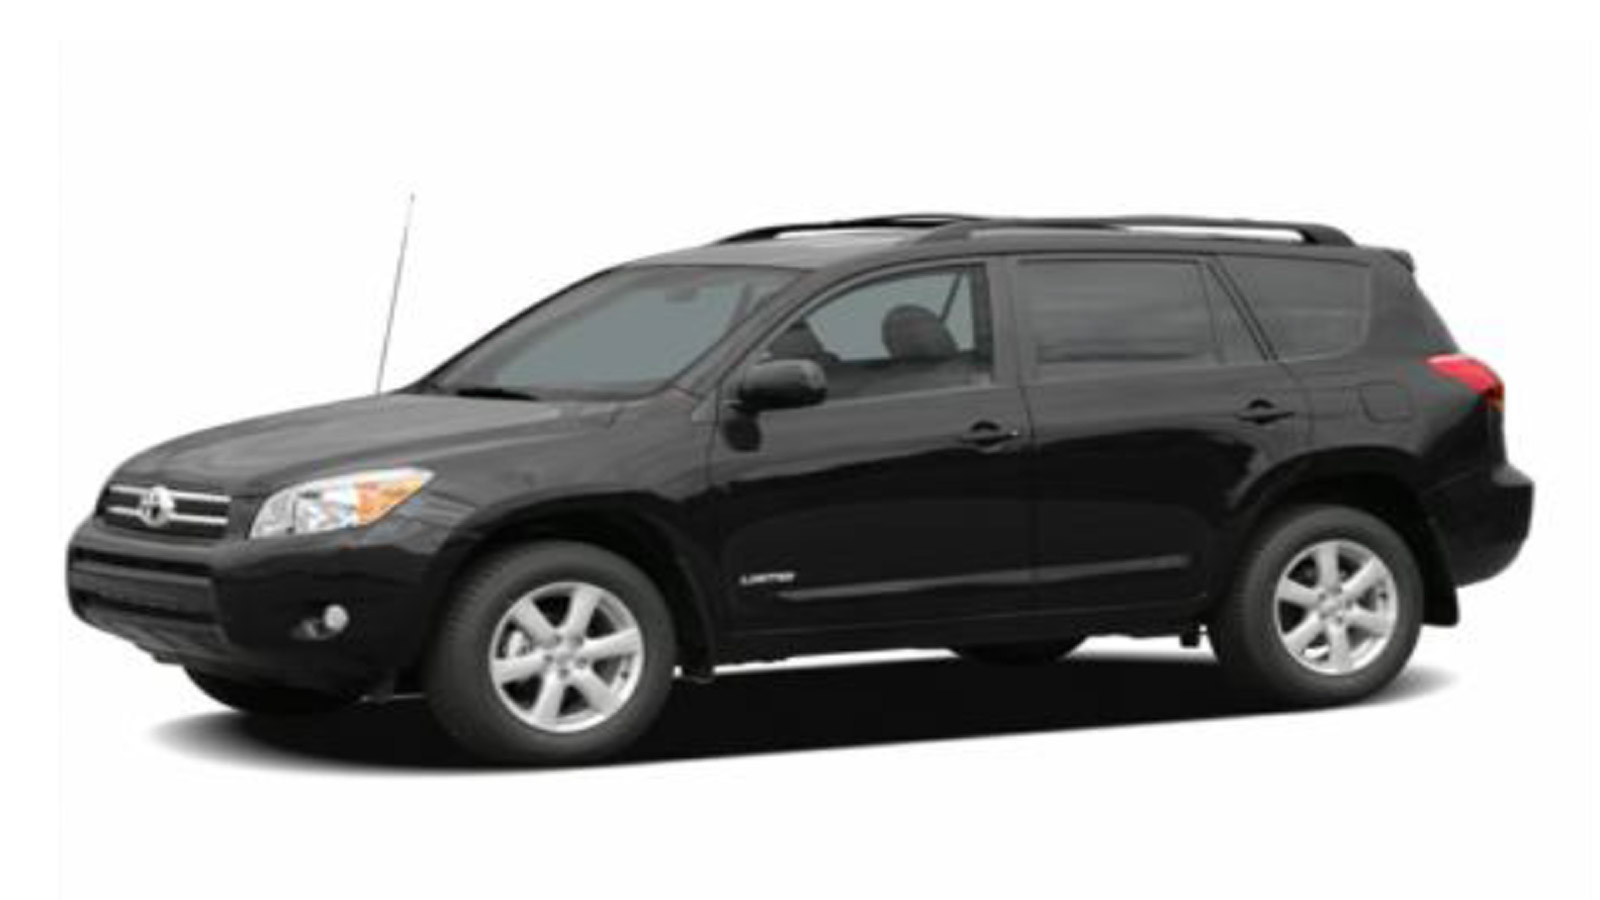 An SUV like the one pictured was used in a series of armed robberies on Sunday evening. (credit: Denver Police)